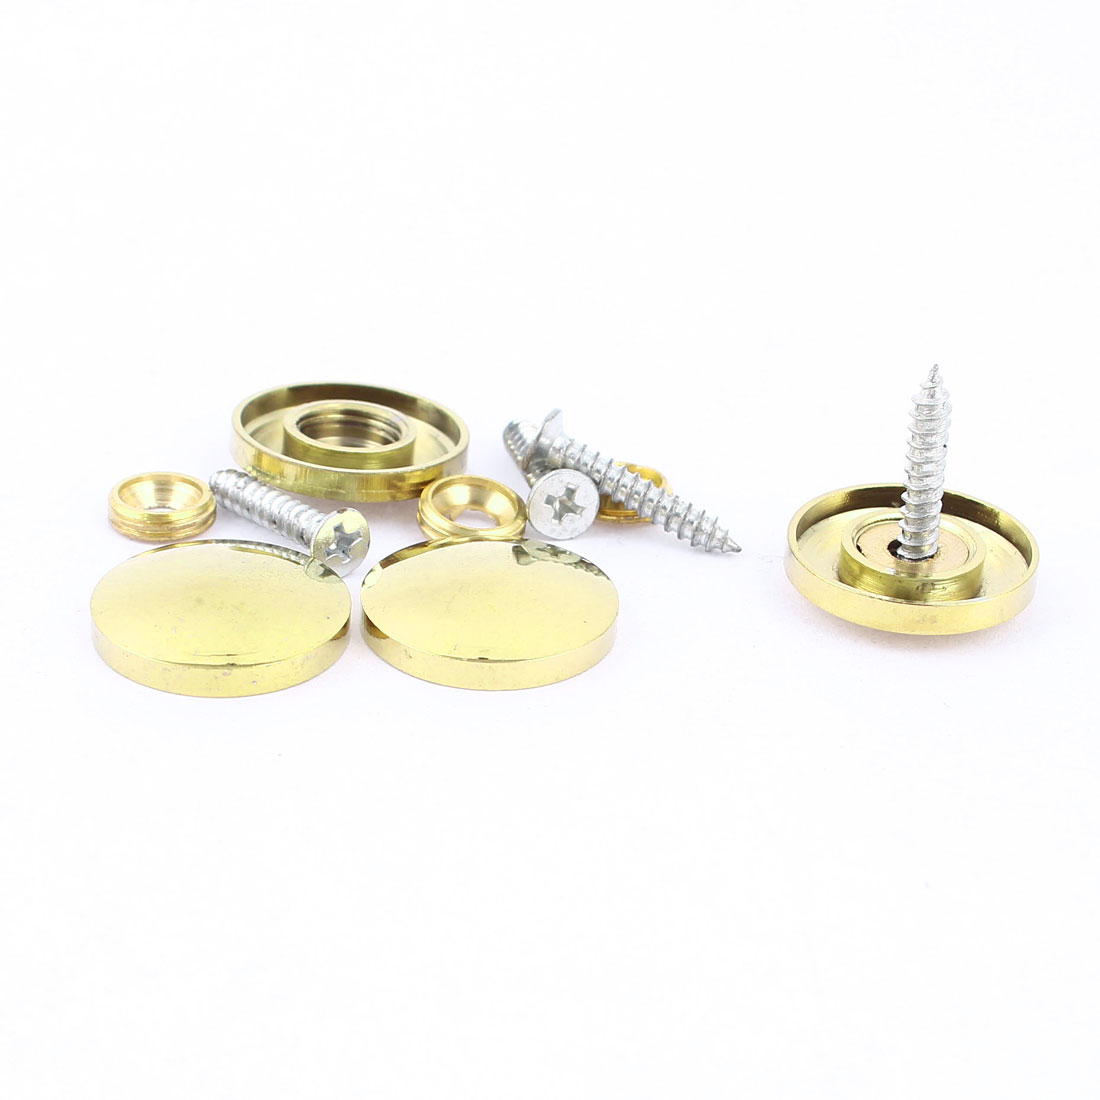 4 Pcs Fitting Parts Brass Tone 22mm Diameter Screw Cap Mirror Nails Decoration Lid